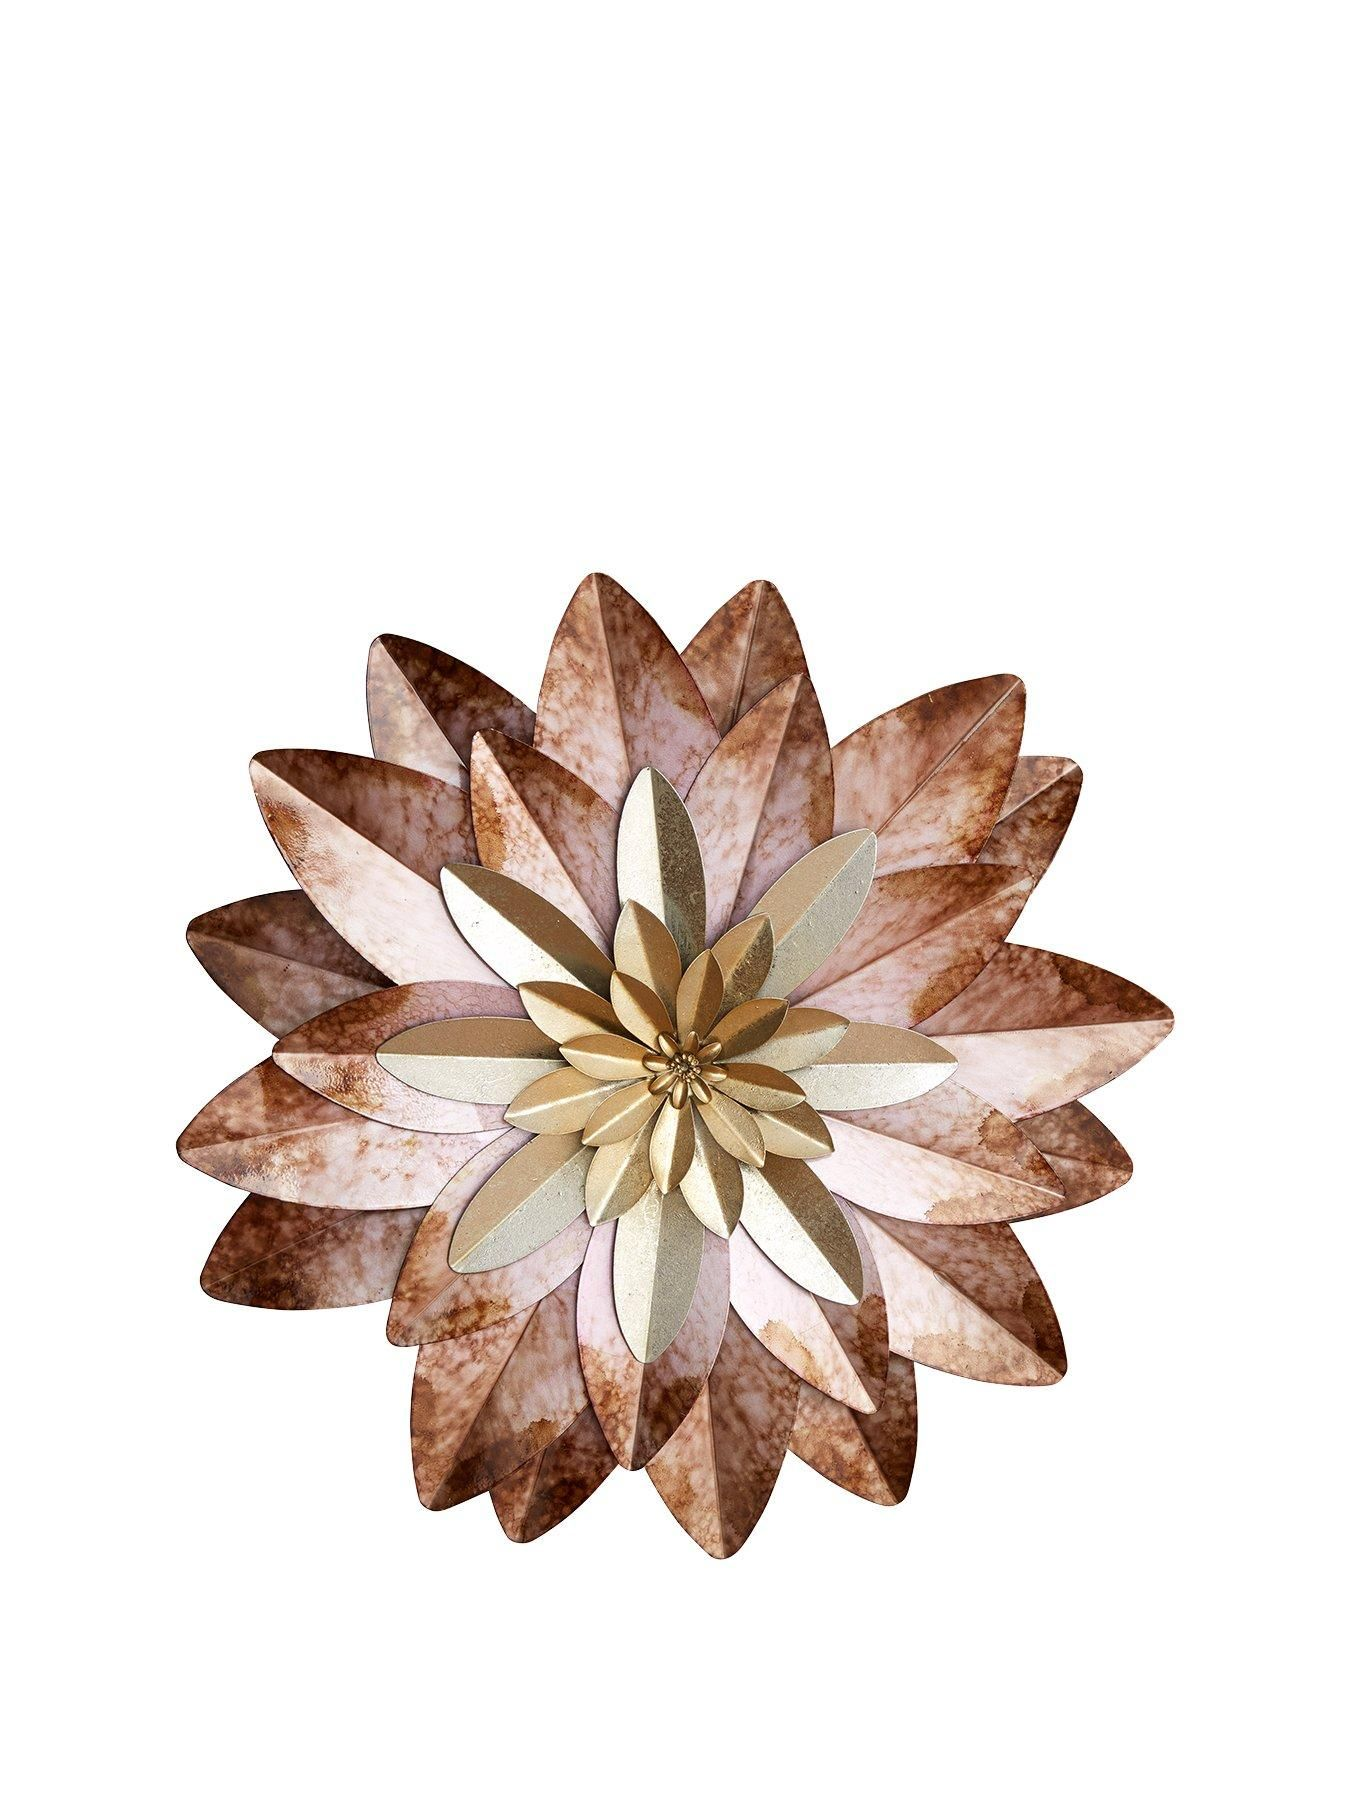 Flower Metal Wall Art Bring your walls a touch of stylish modern art with  this eye-catching flower. Graduating from a golden yellow centre to a  weathered ... 683275a206